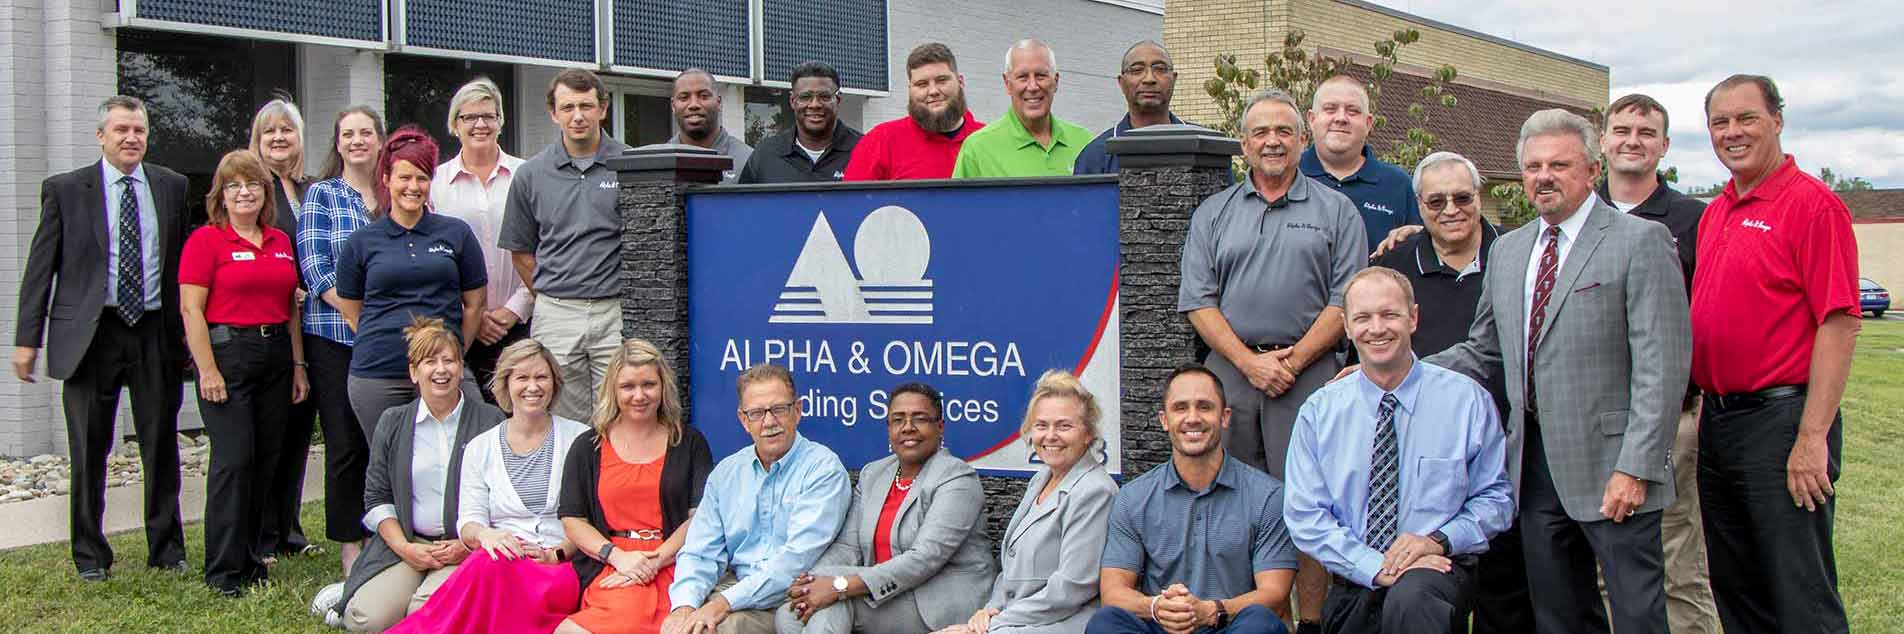 Alpha and Omega employees